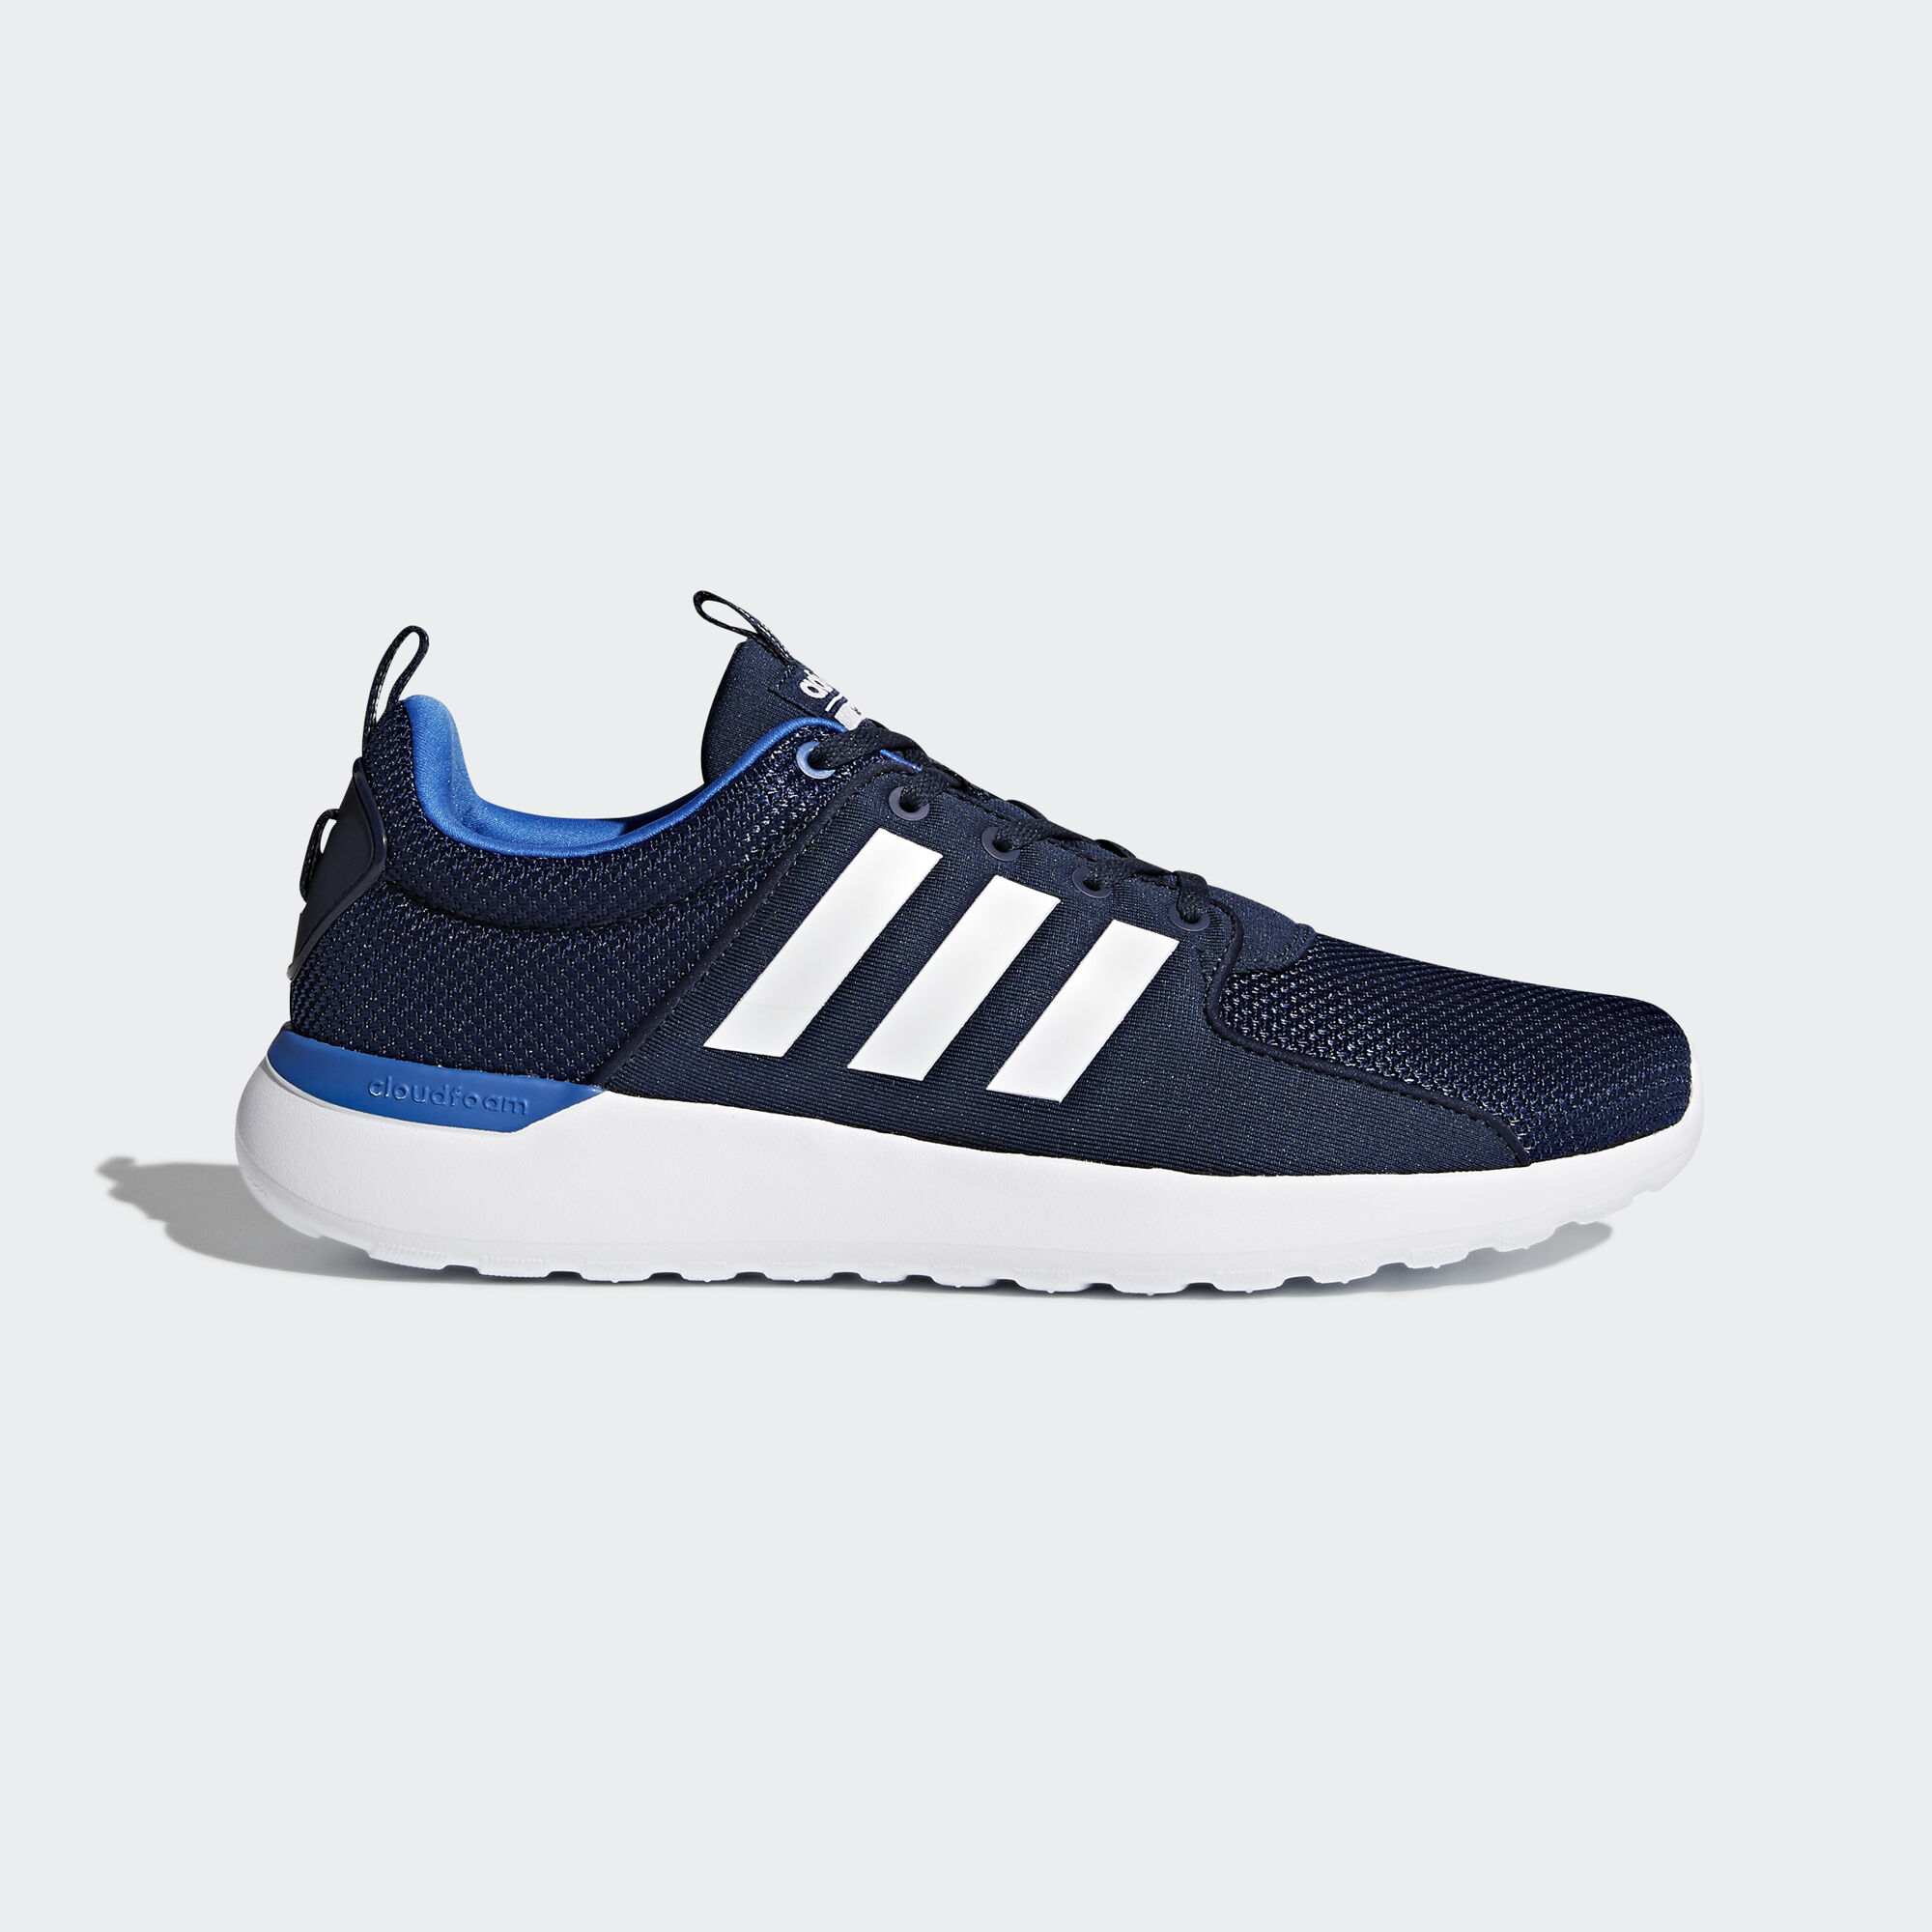 adidas - Cloudfoam Lite Racer Shoes Collegiate Navy/Footwear White/Blue  BB9821